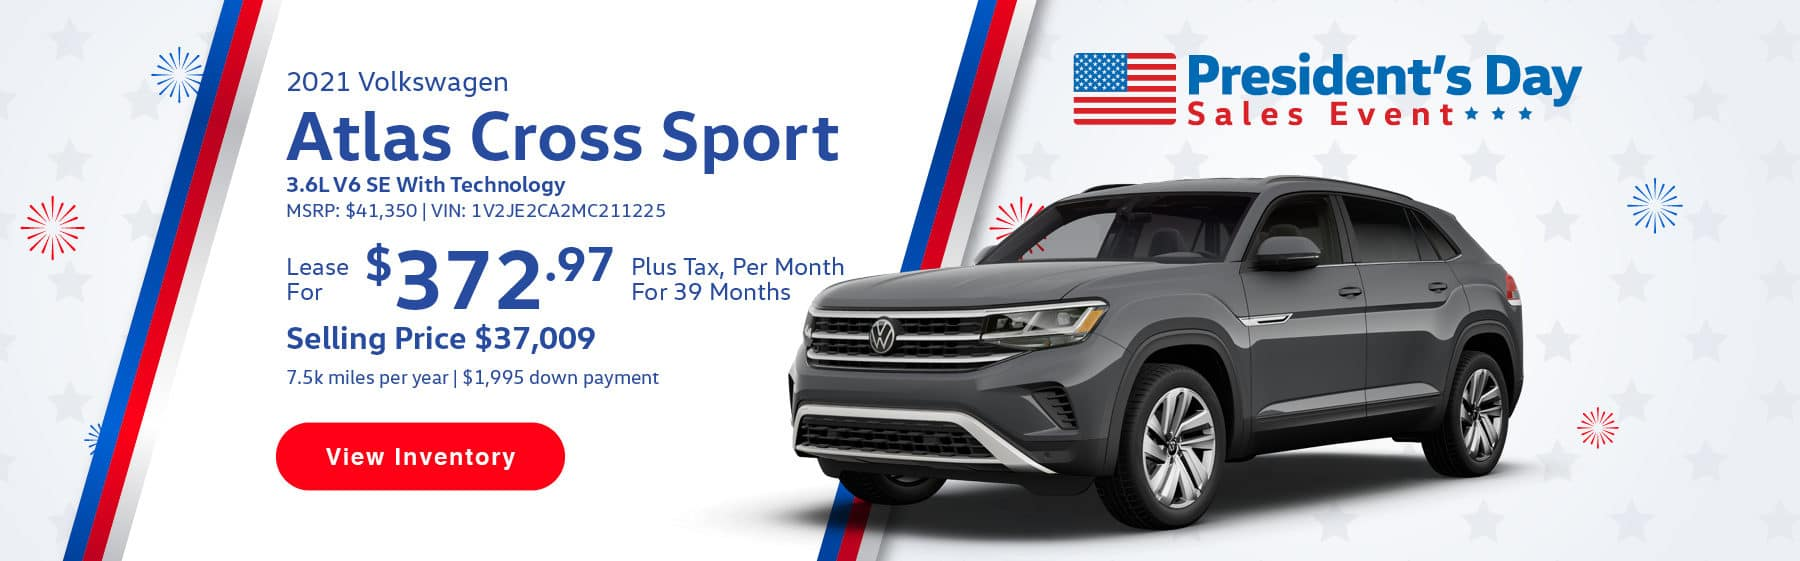 Lease the 2021 Atlas Cross Sport 3.6L V6 SE w/Technology for $372.97 per month, plus tax for 39 months. Selling price is $37,009. 7,500 miles per year. $1,995 down payment. $41,350 MSRP. Vin #: 1V2JE2CA2MC211225.